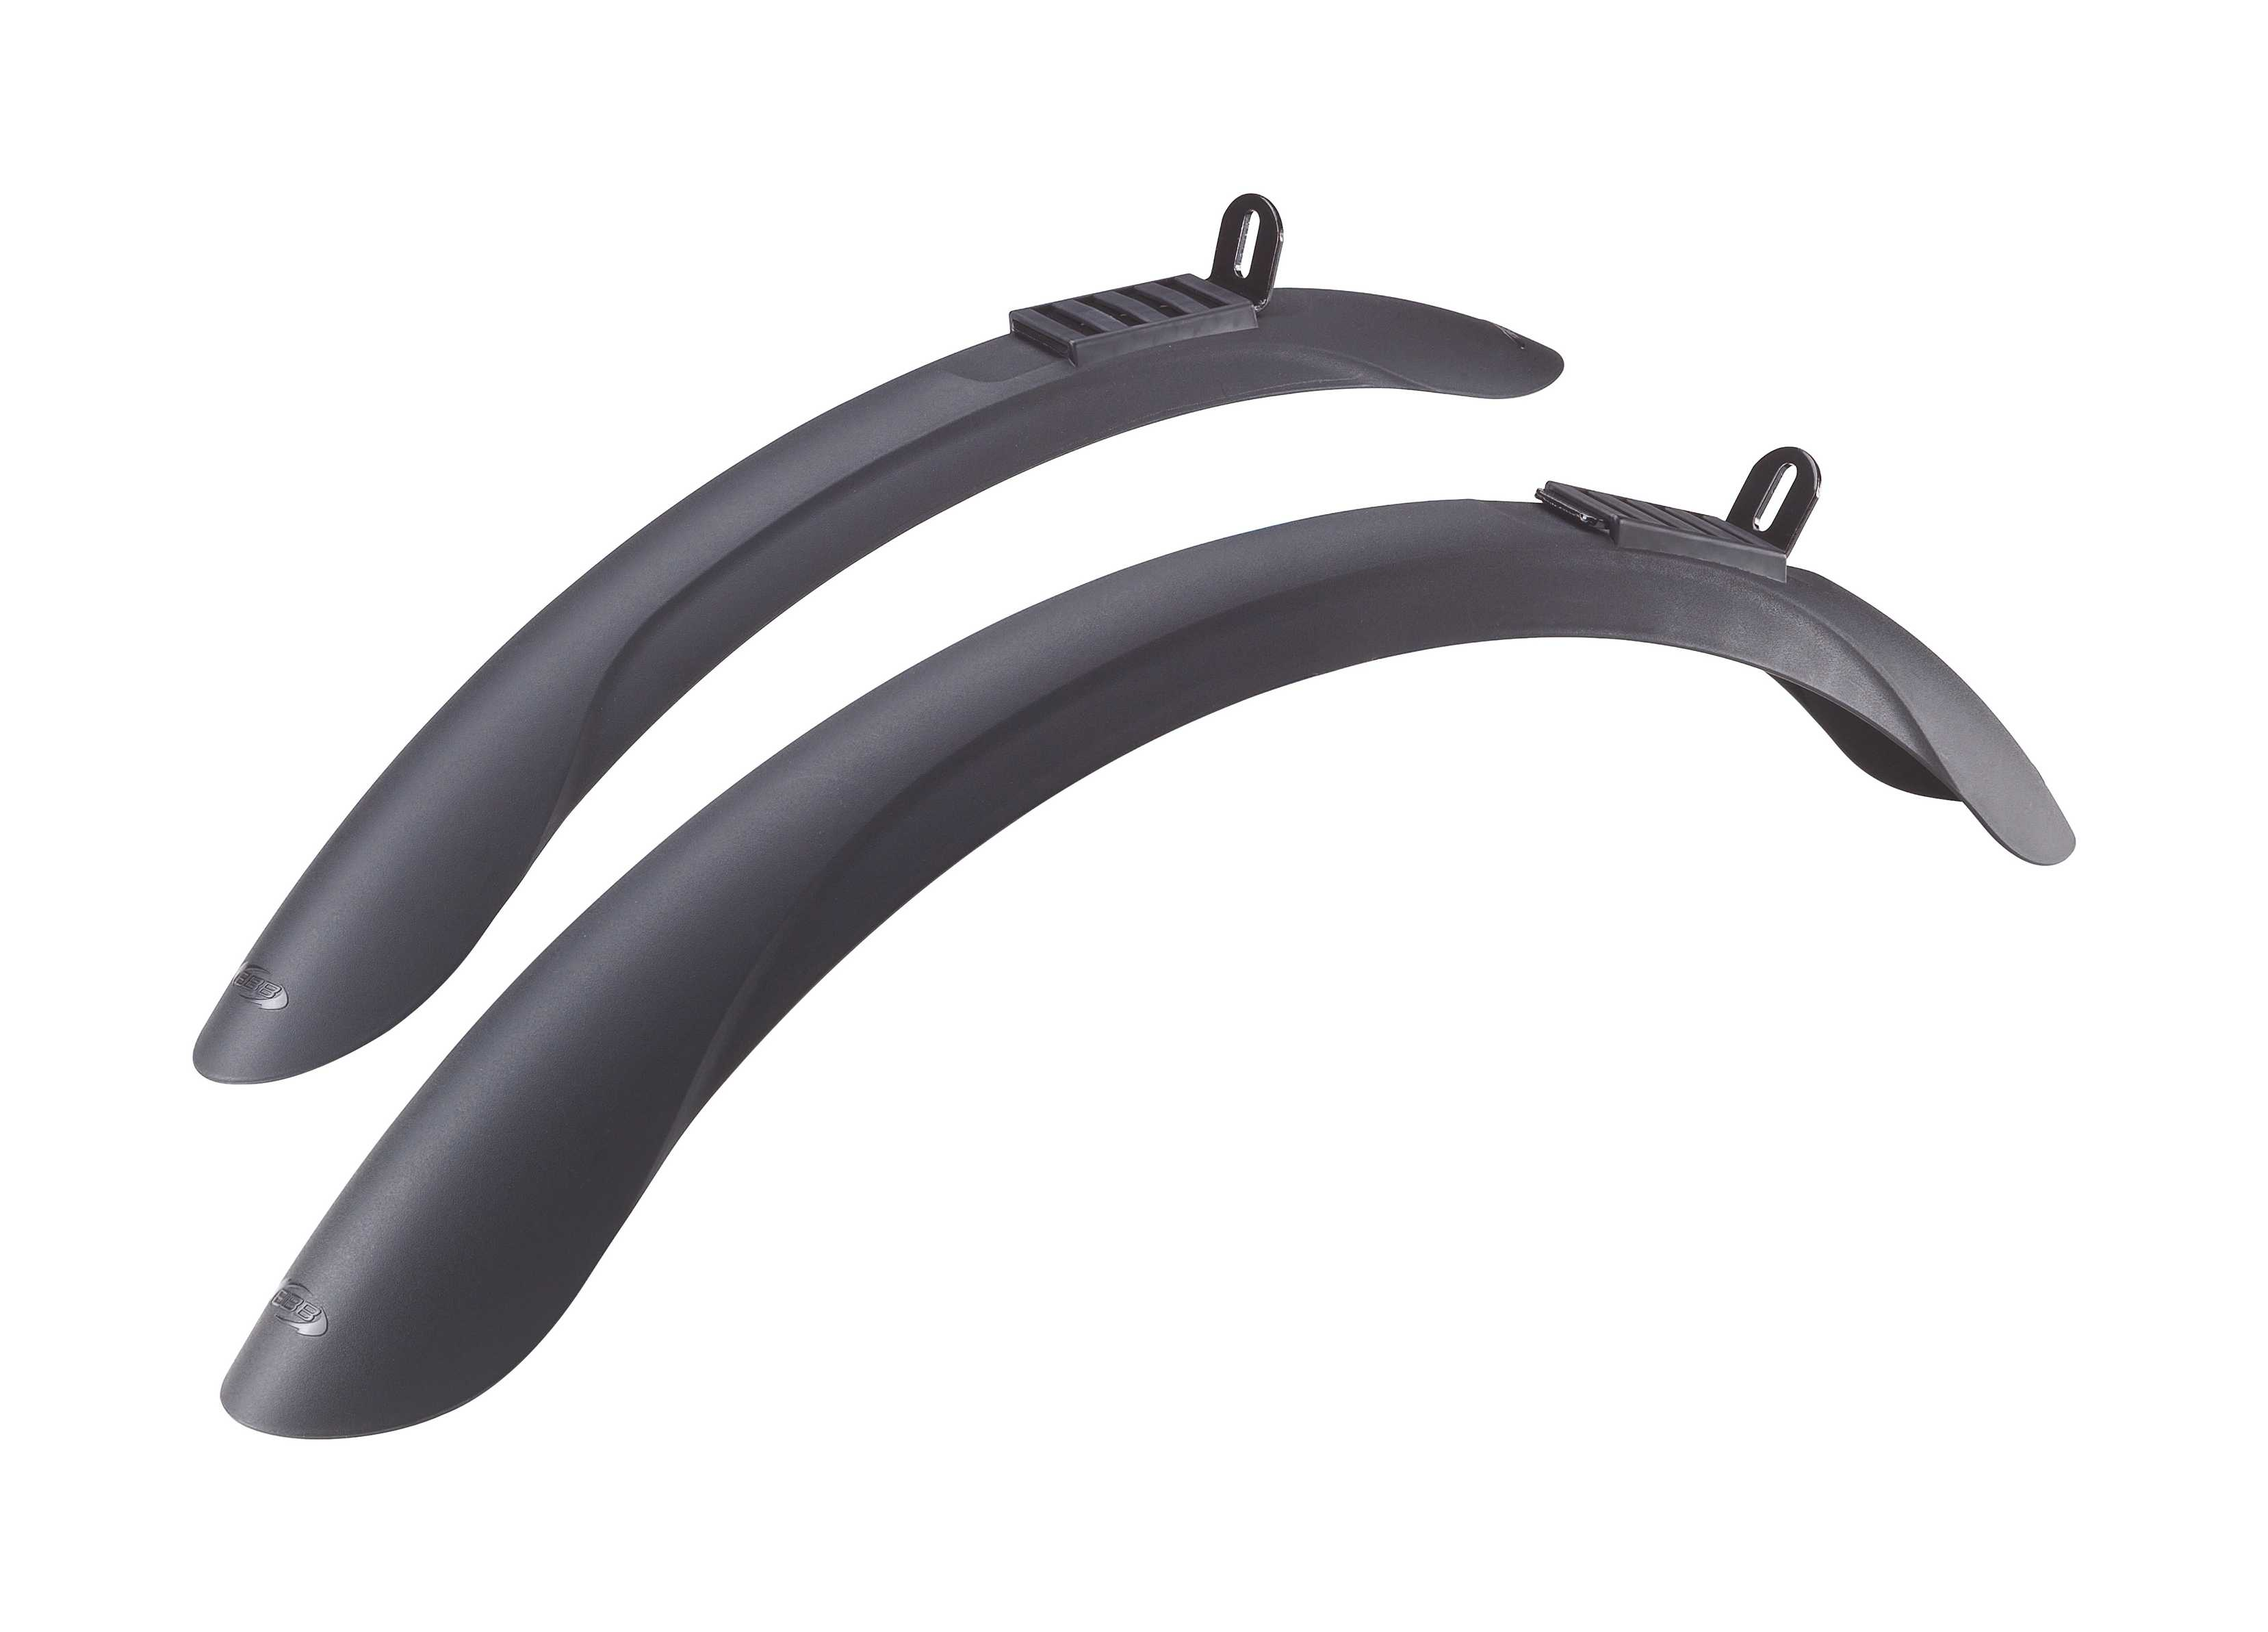 BBB Rainwarriors Mudguard Set 26-28